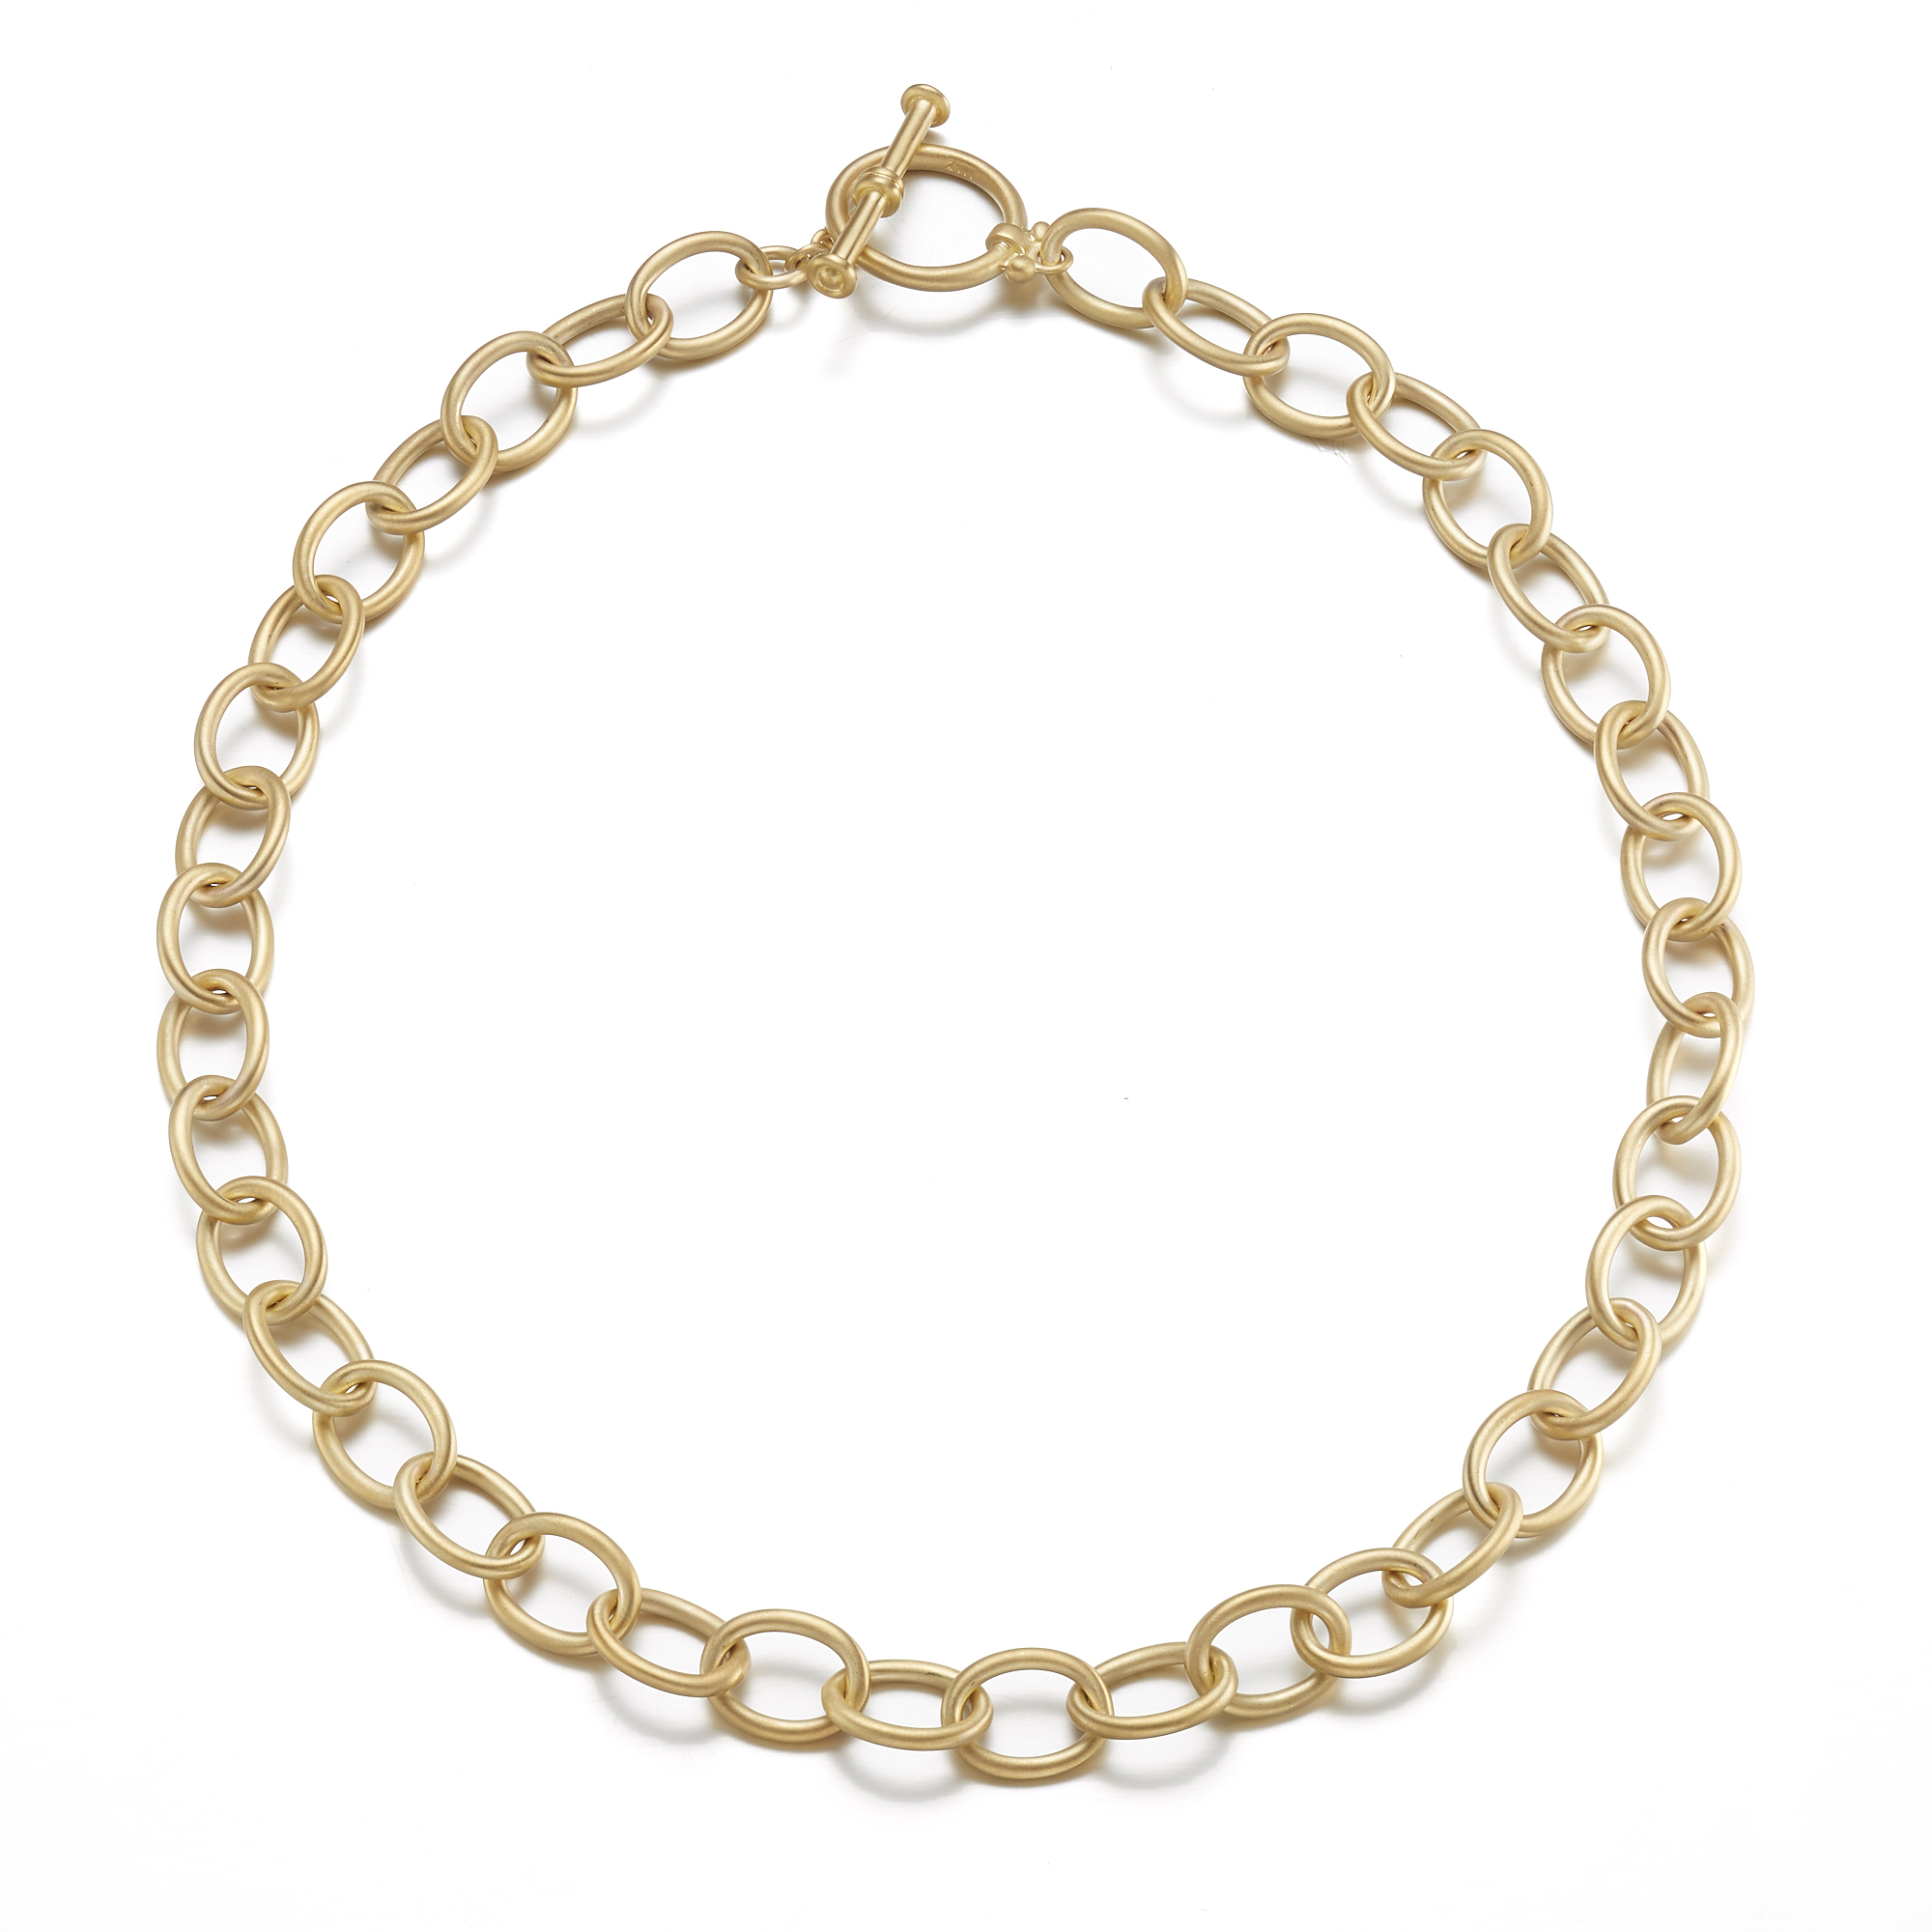 Gold Link Necklace with Toggle Clasp